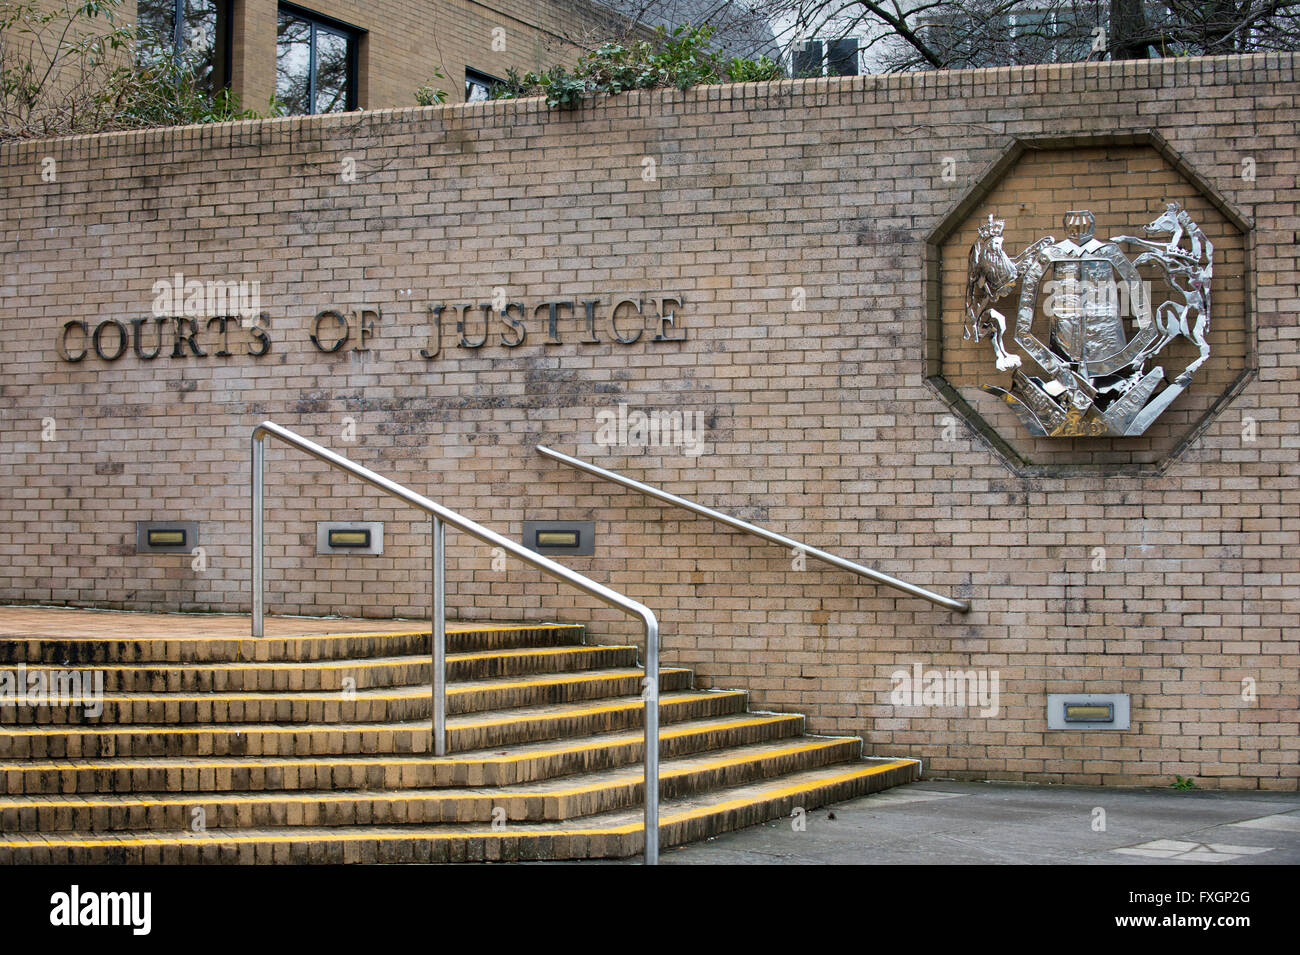 Southampton Crown Court, Hampshire, England, United Kingdom - Stock Image